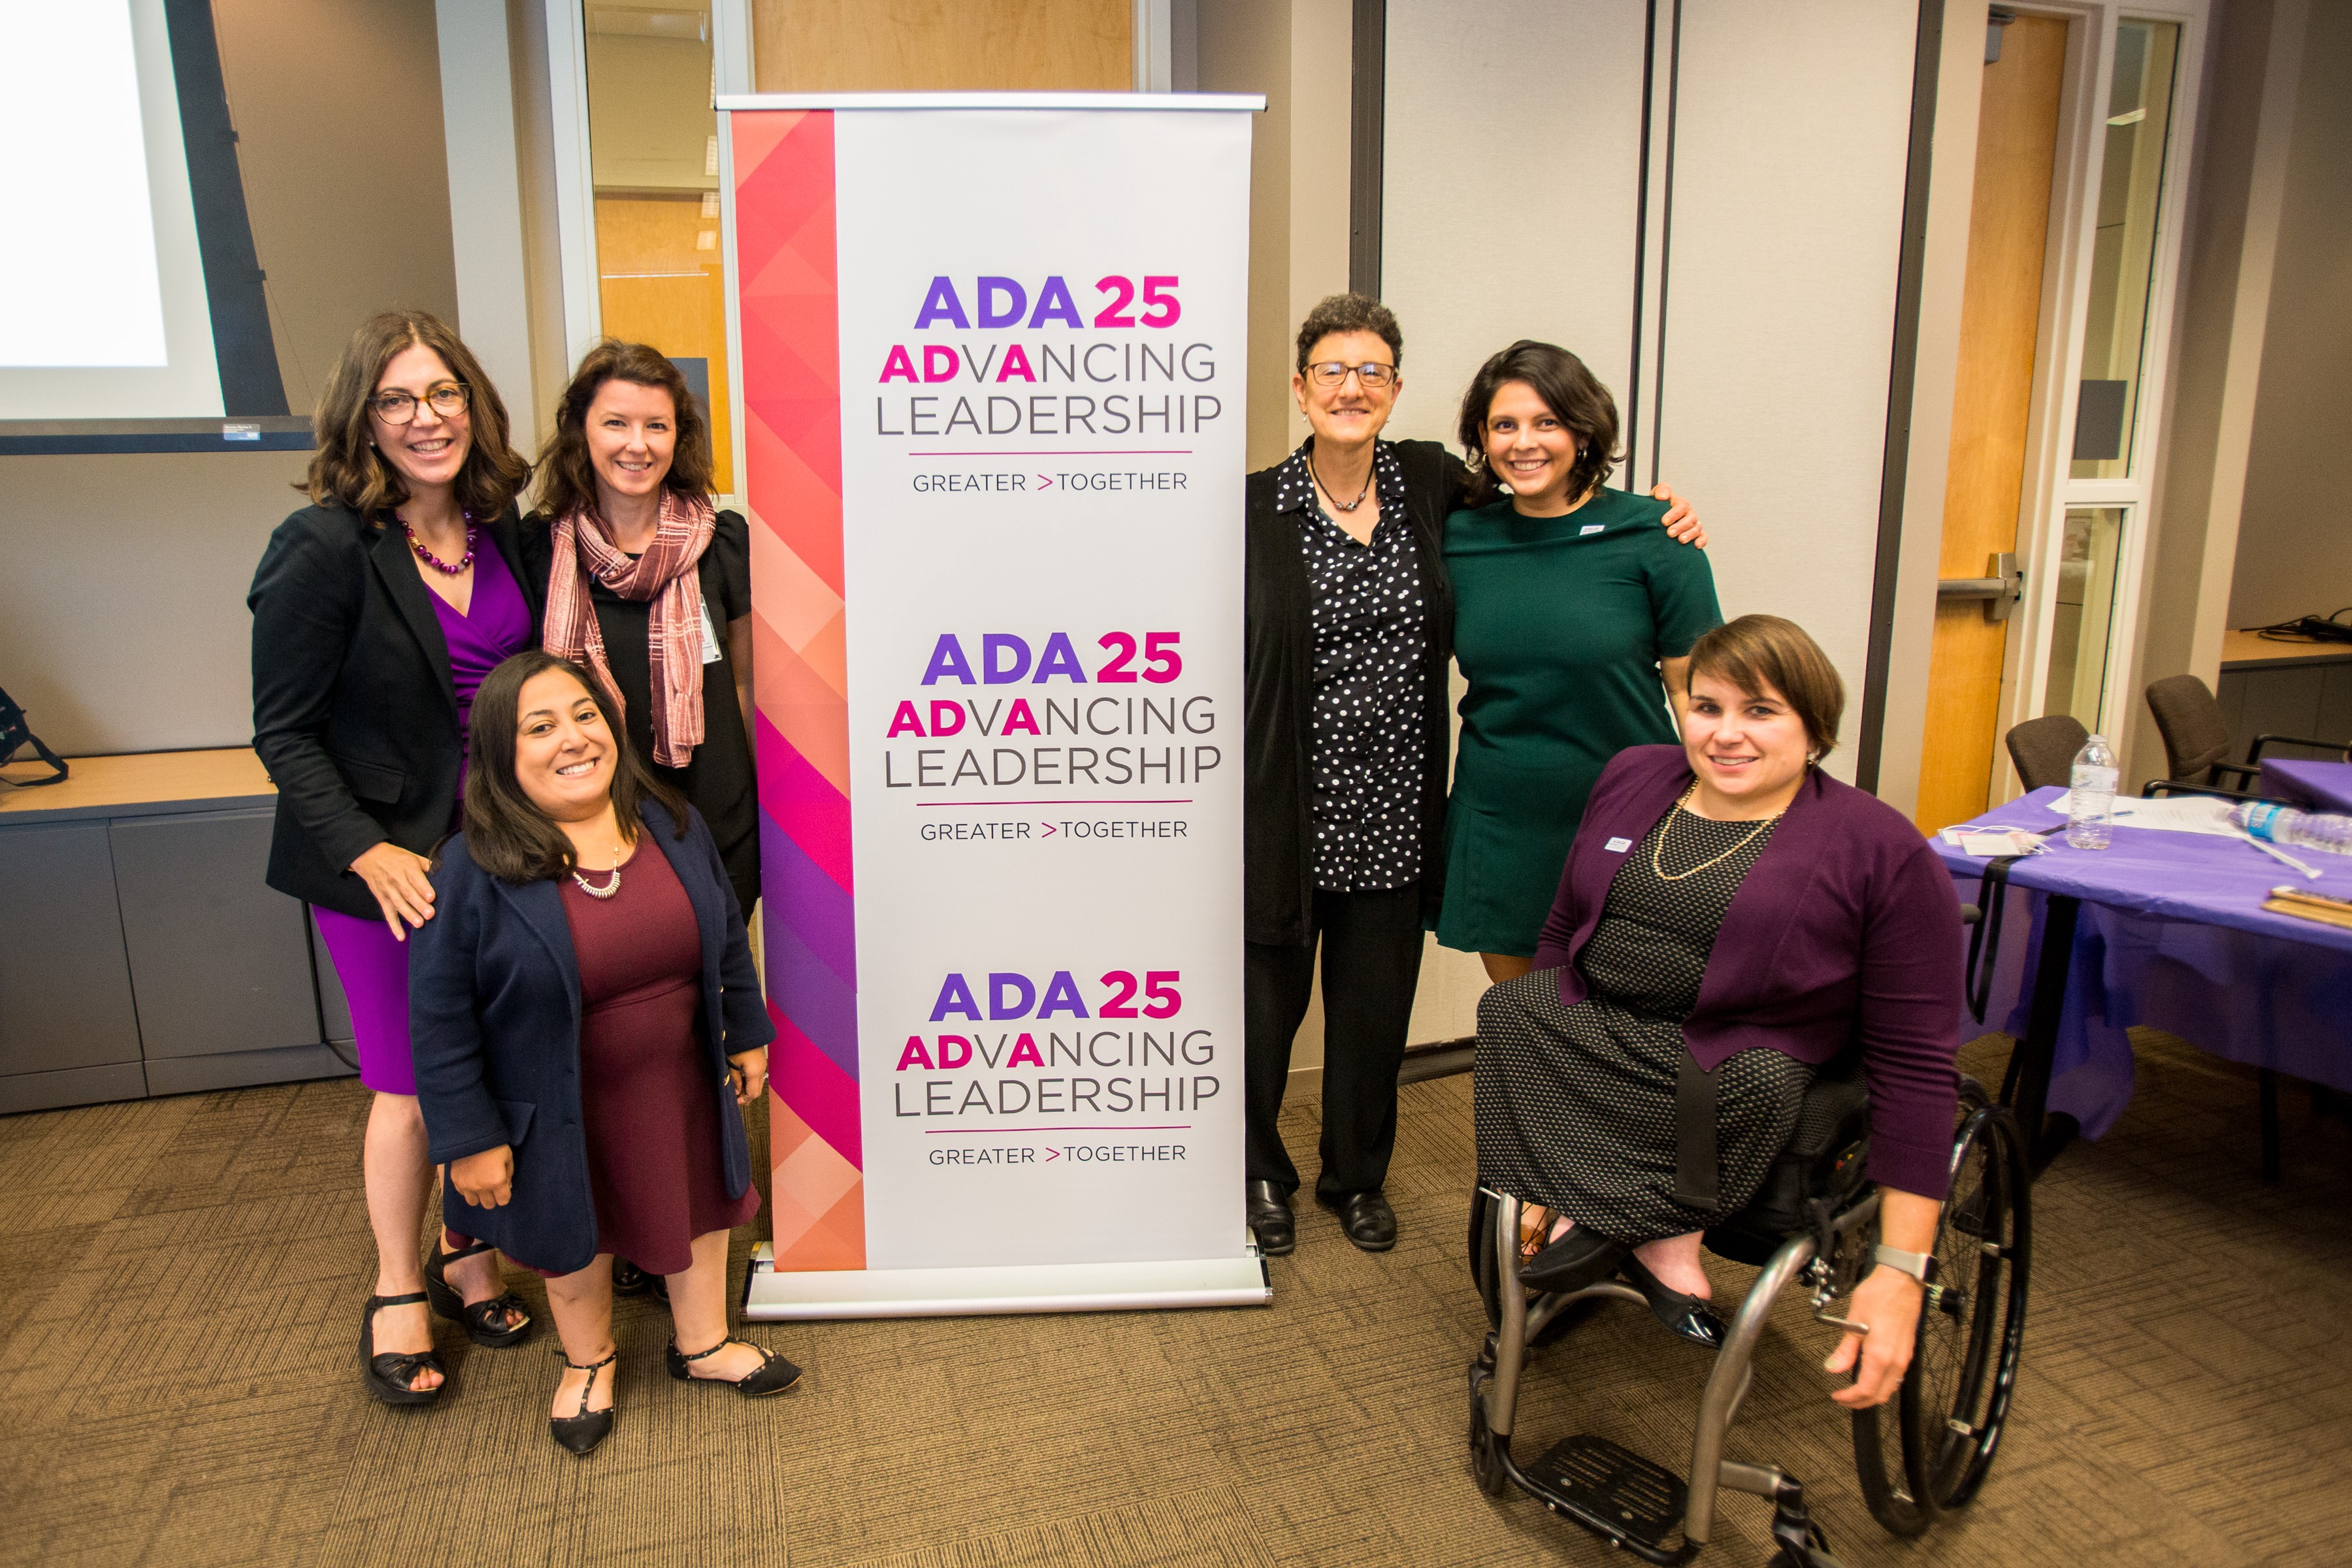 Disability Lead staff pose around an Advancing Leadership banner.